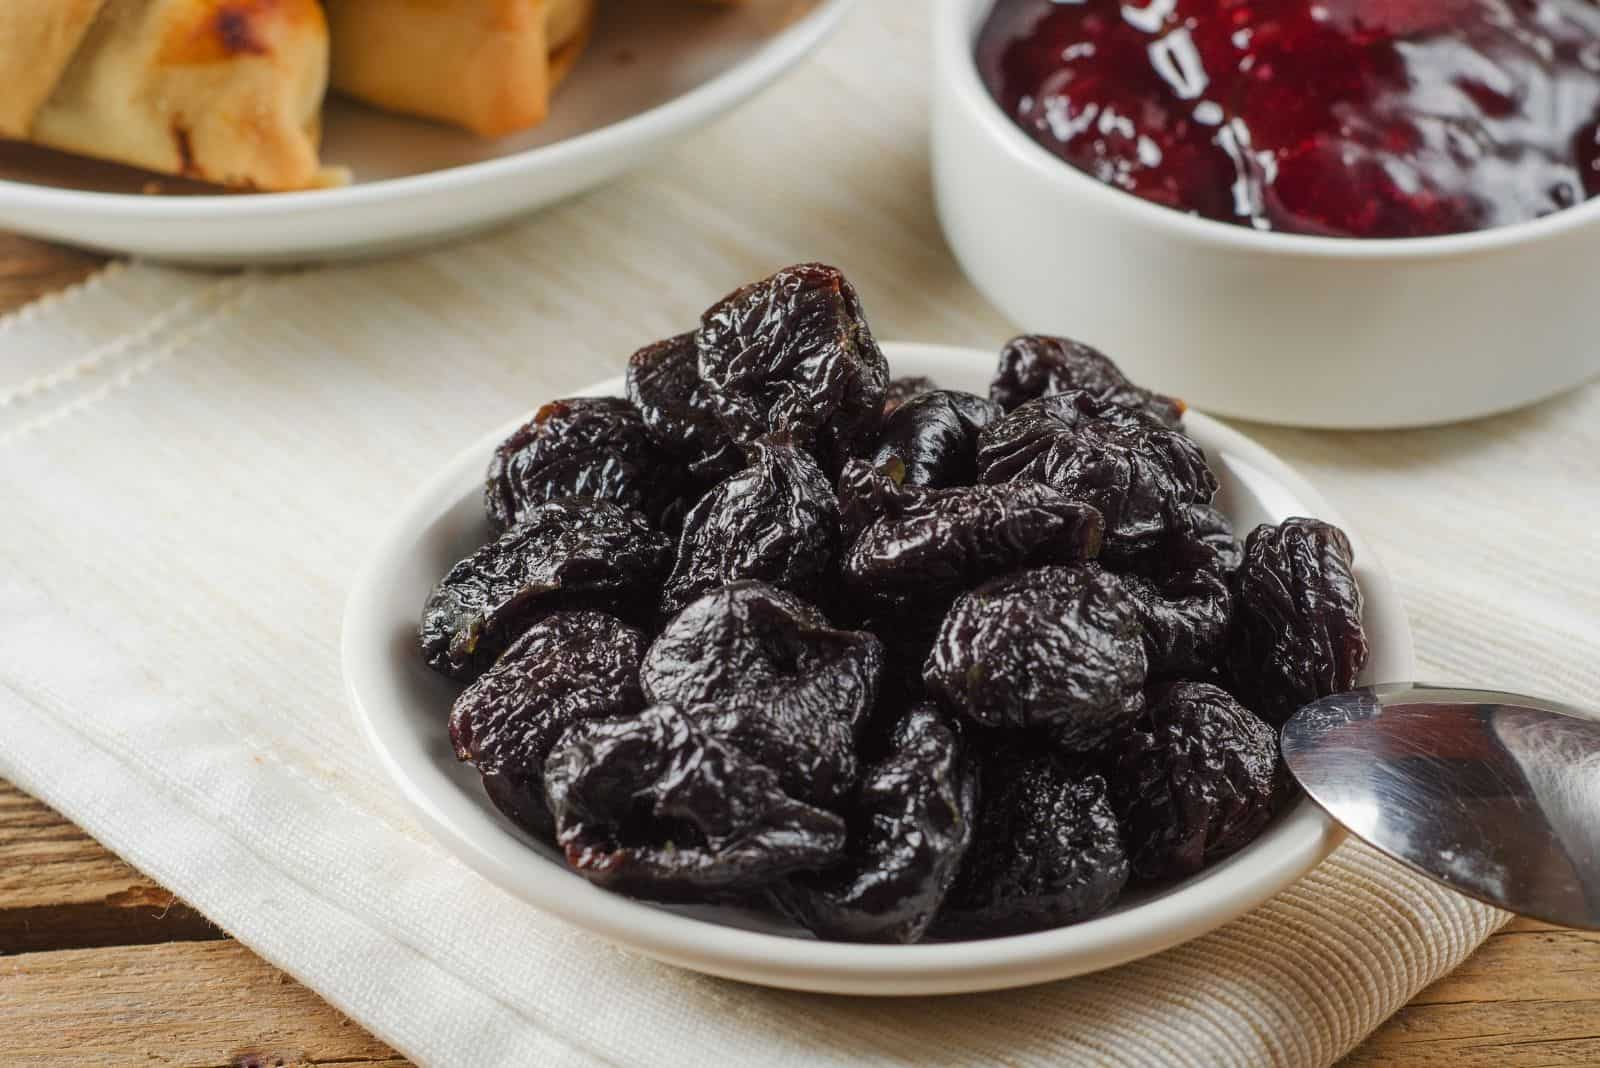 prunes in small plate and jam beside on the table